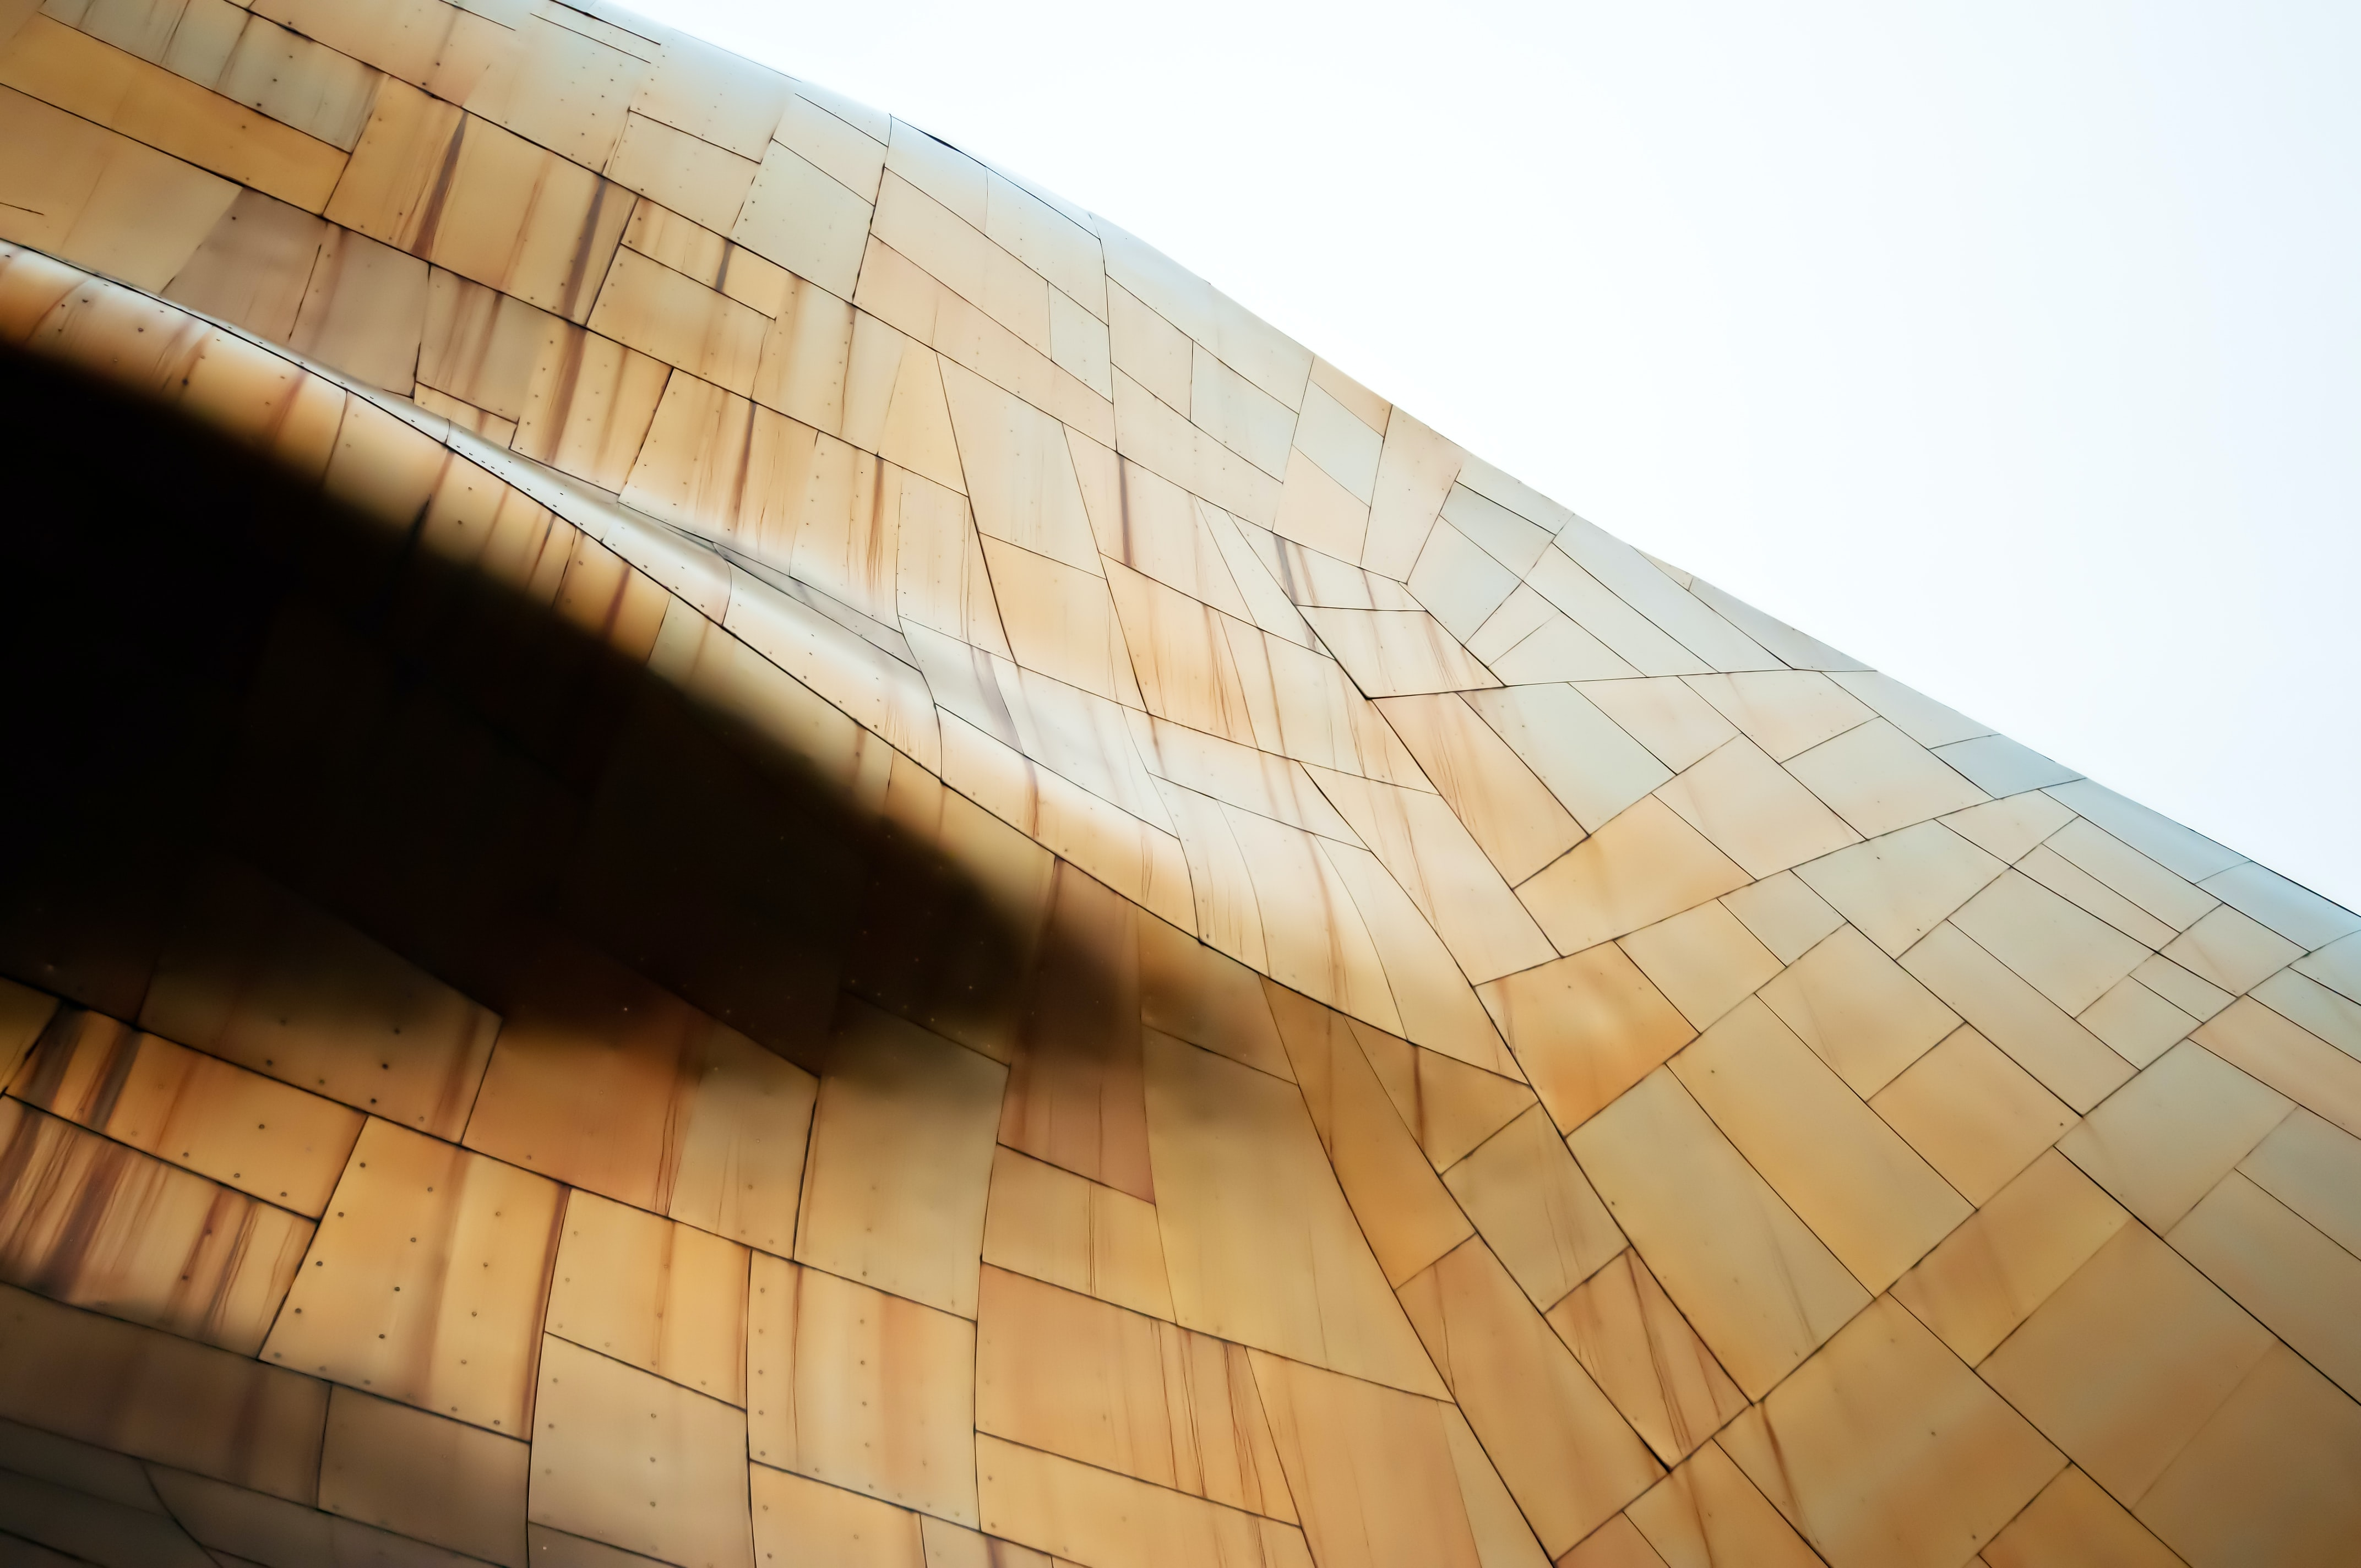 An abstract shape formed by a building façade made of metal sheets